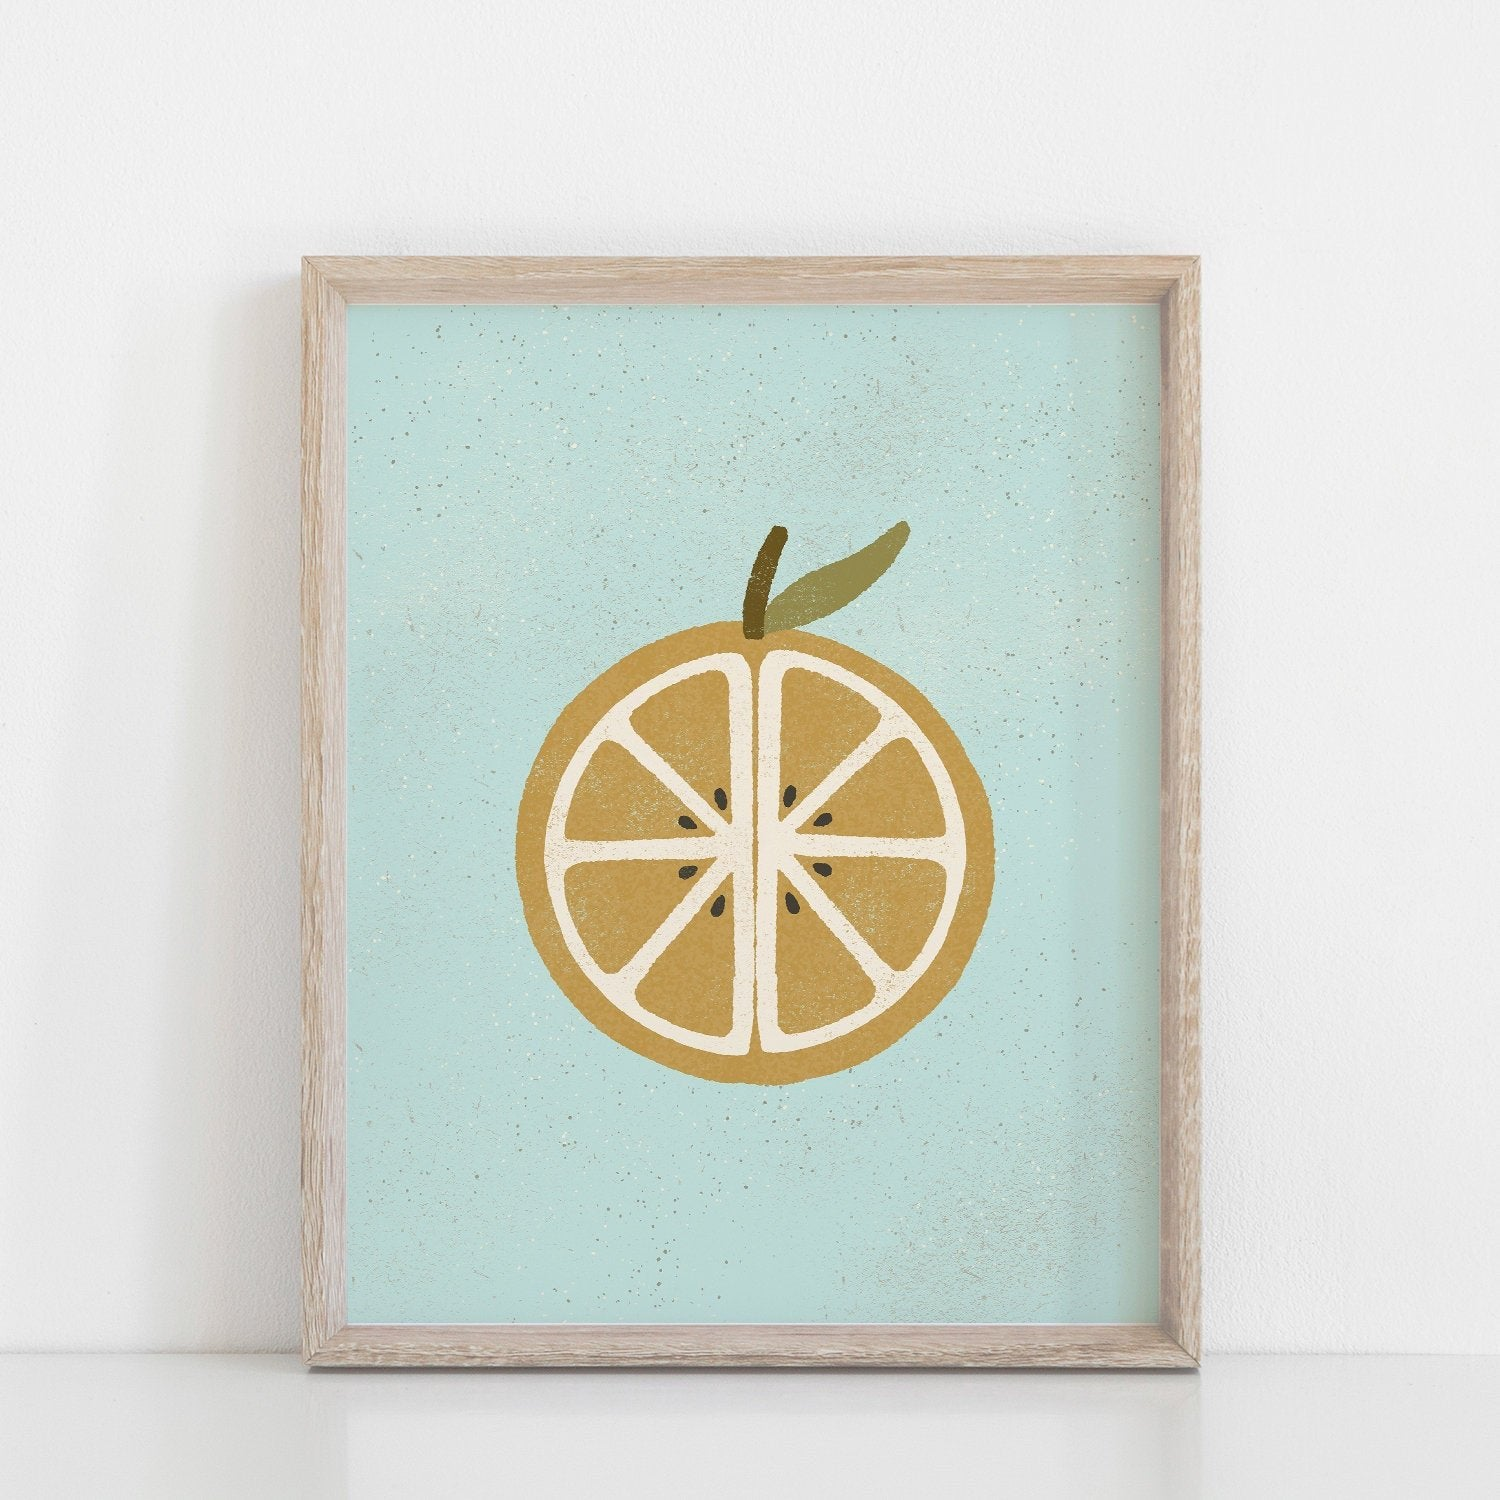 Orange Wall Art Print | Fruit Wall Art | Fruit Art | Fruit Illustration | Orange Art | Summer Art | 5x7 8x10 11x14 16x20